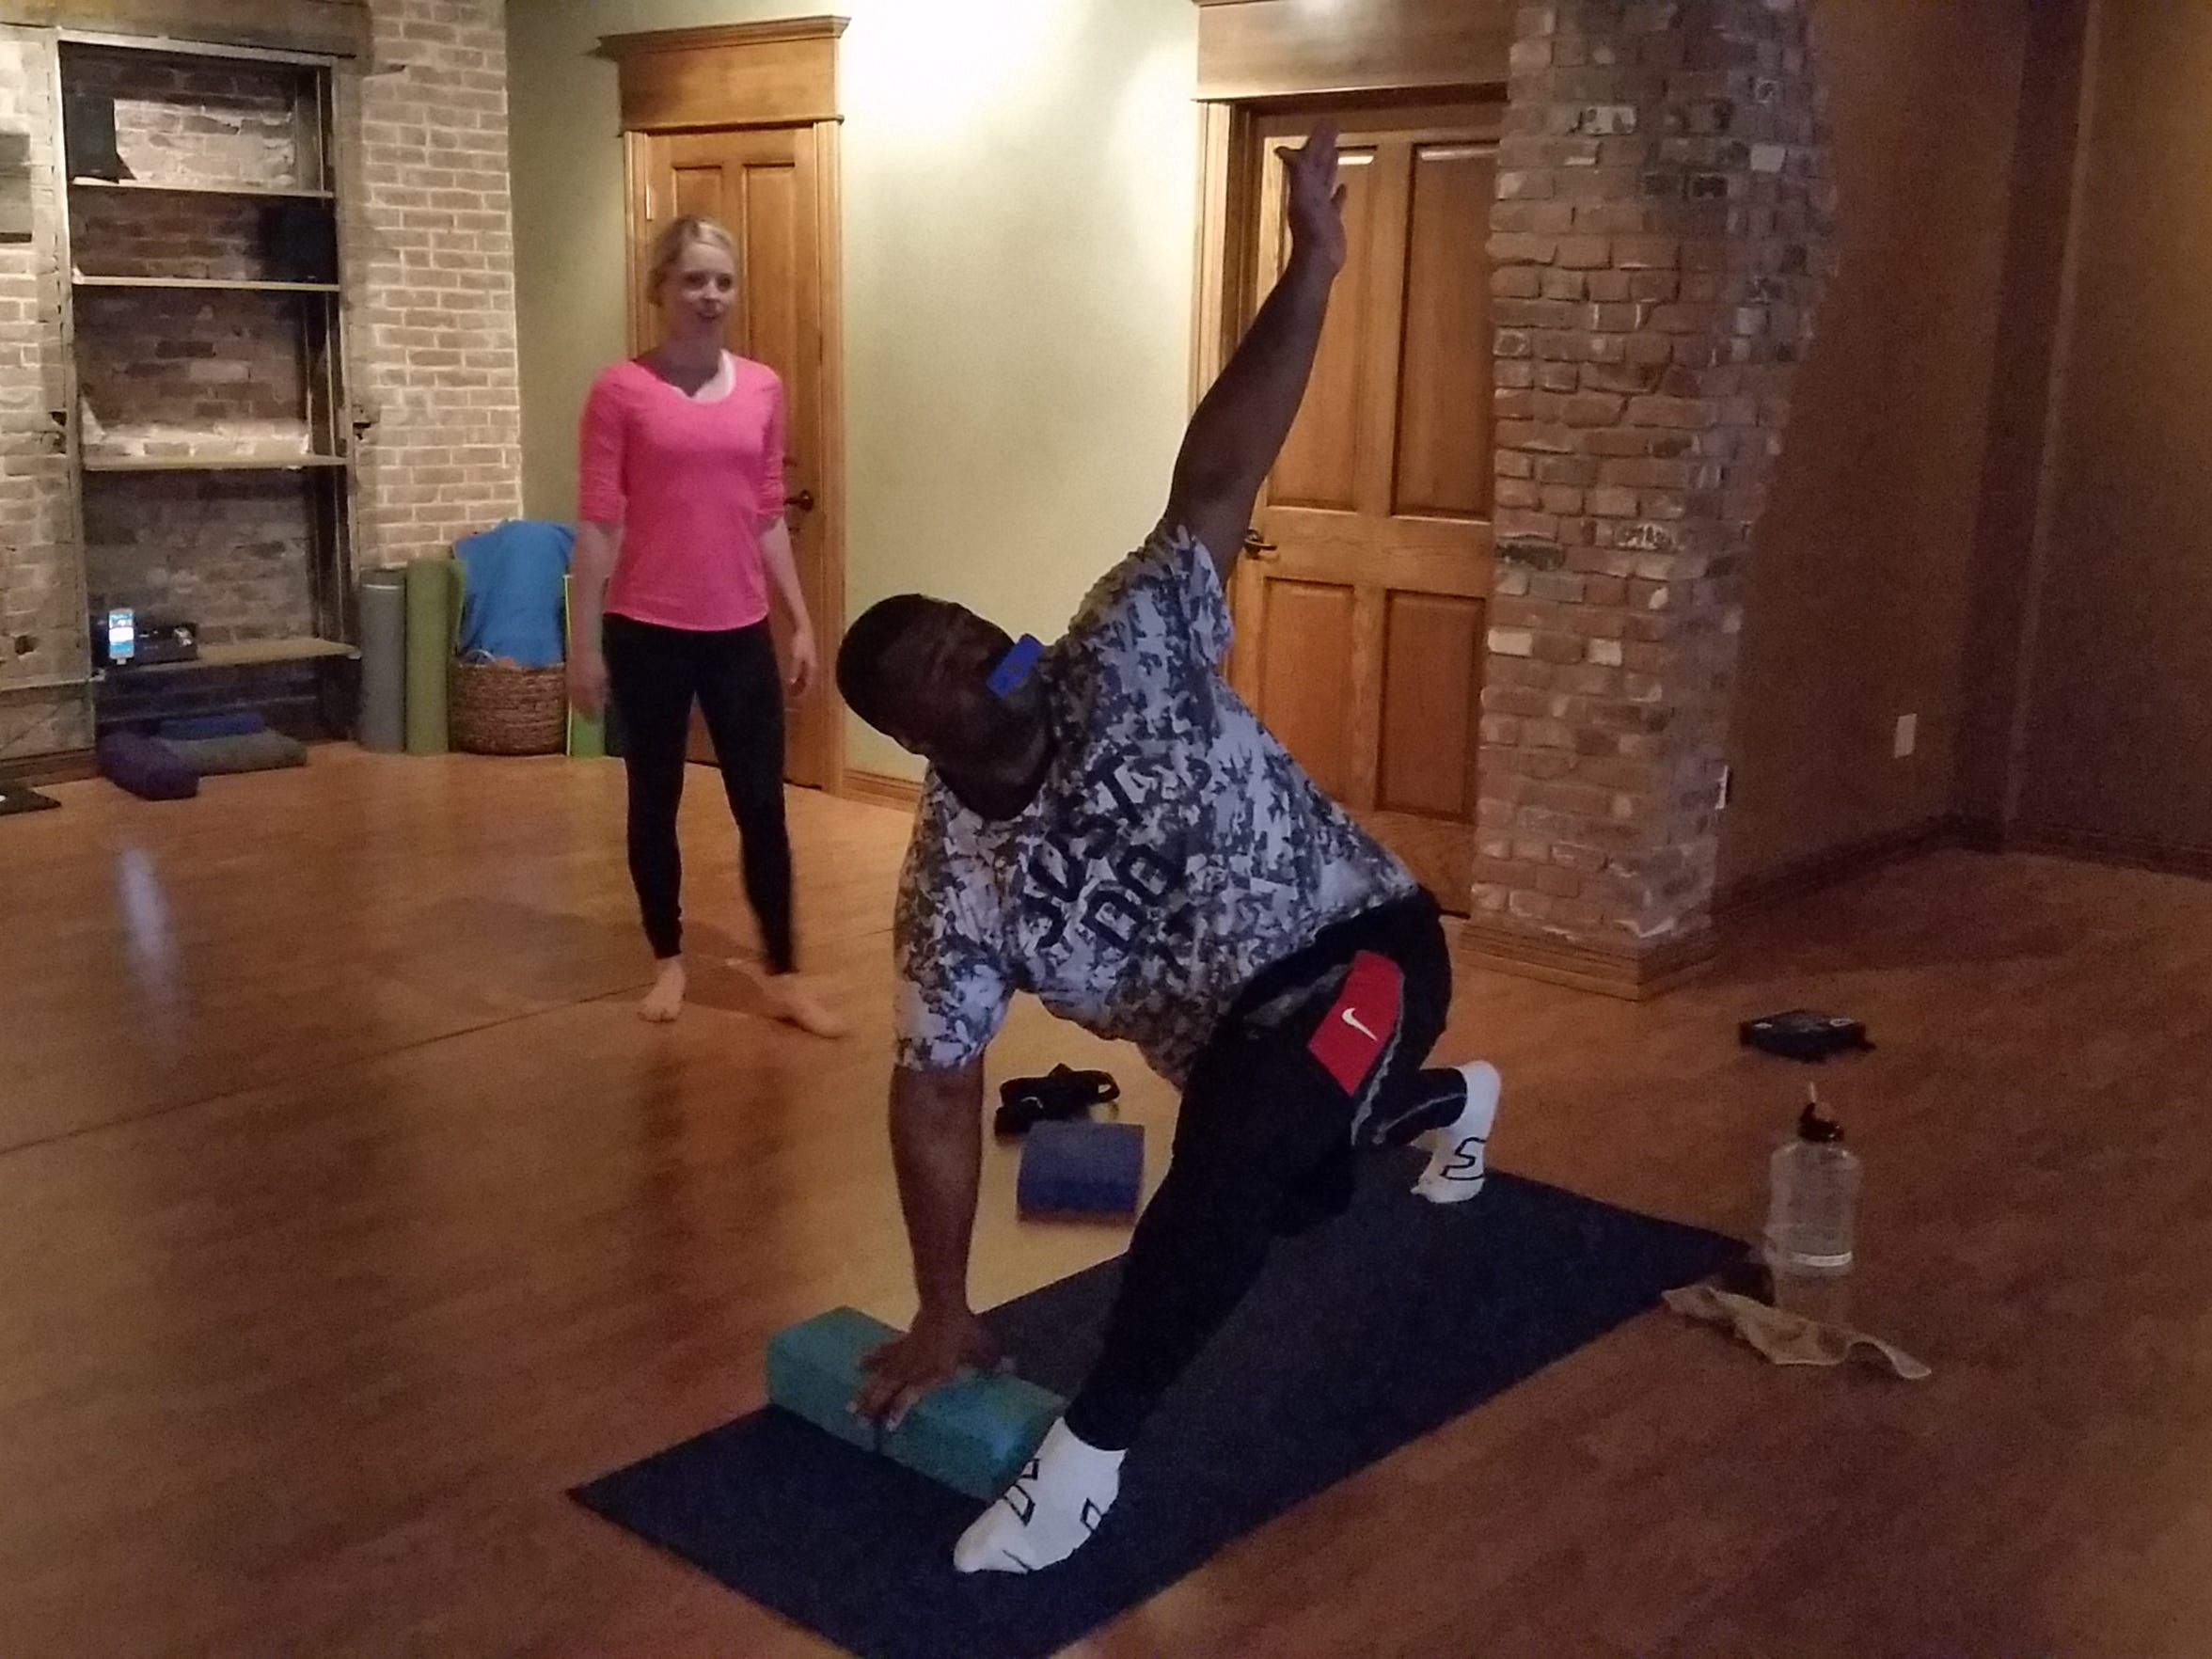 Packers defensive lineman B.J. Raji stretches his shoulder, spine and hamstring during a yoga session Friday at Flow Yoga Studio in De Pere. Instructor Ryanne Cunningham looks on.